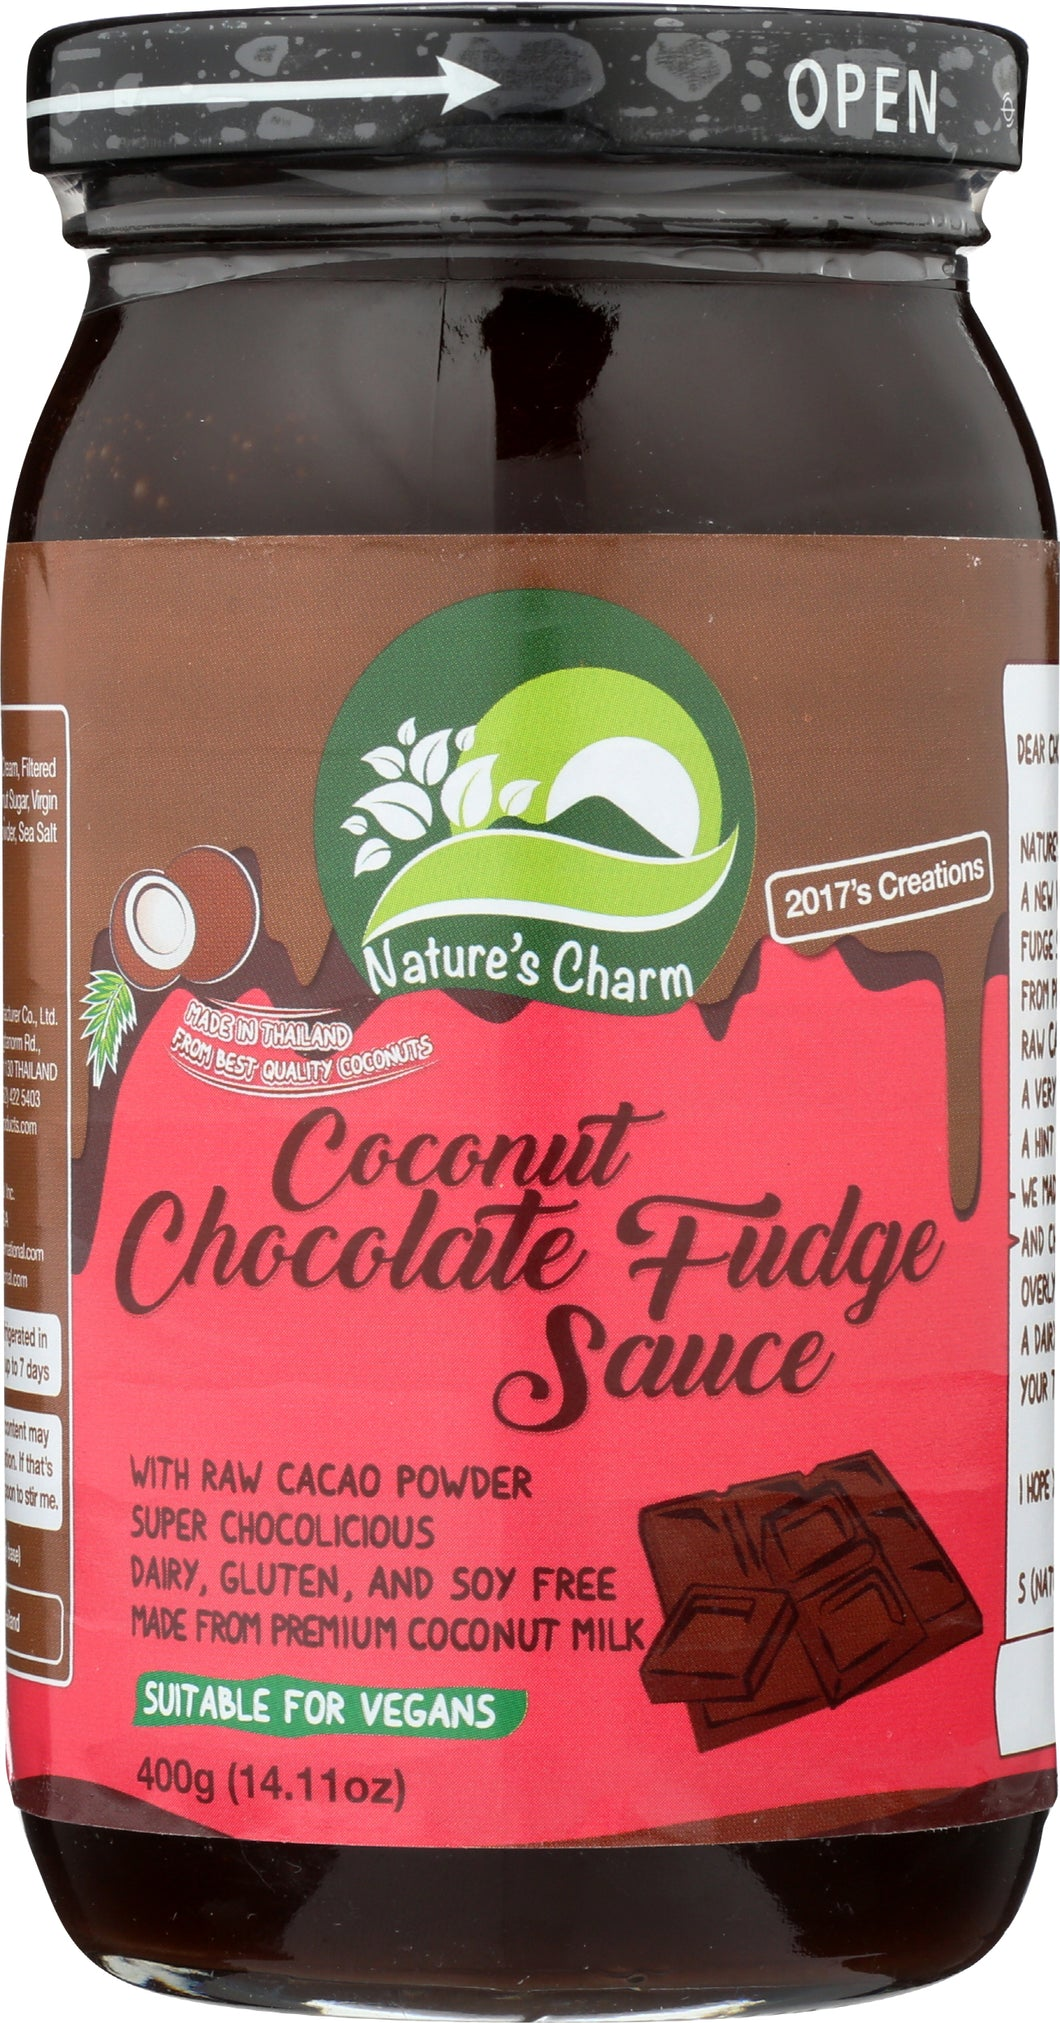 Nature's Charm Coconut Chocolate Fudge Sauce (20% OFF)